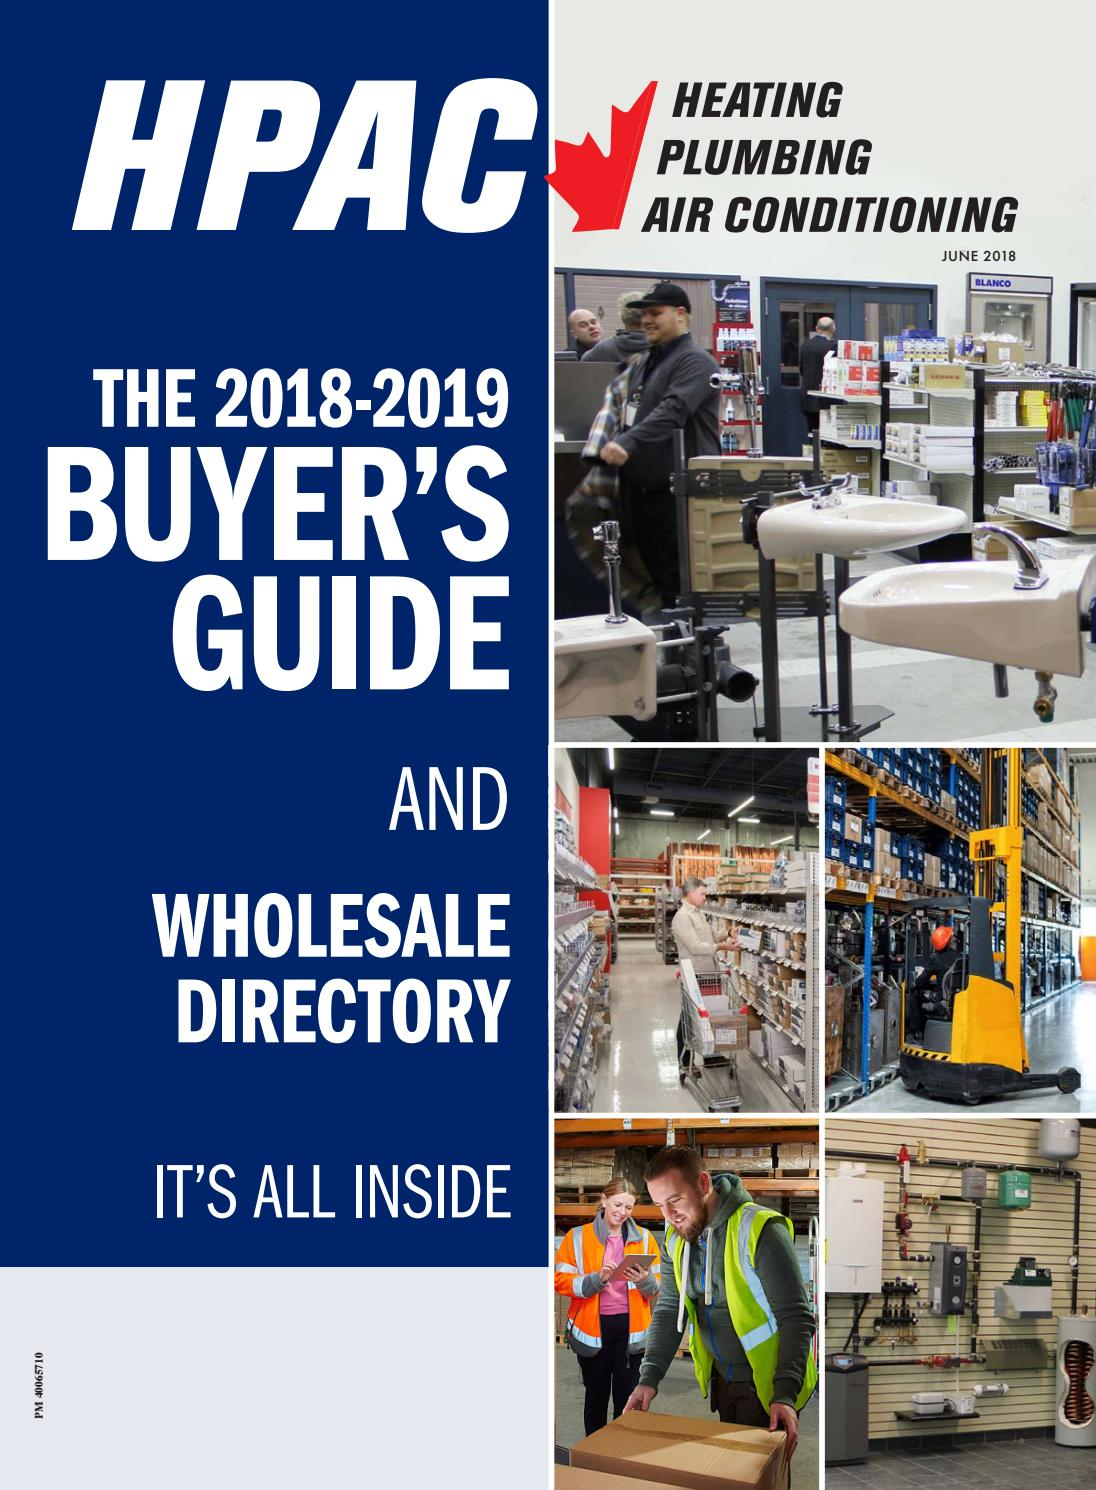 HPAC June 2018 by Annex Business Media - issuu